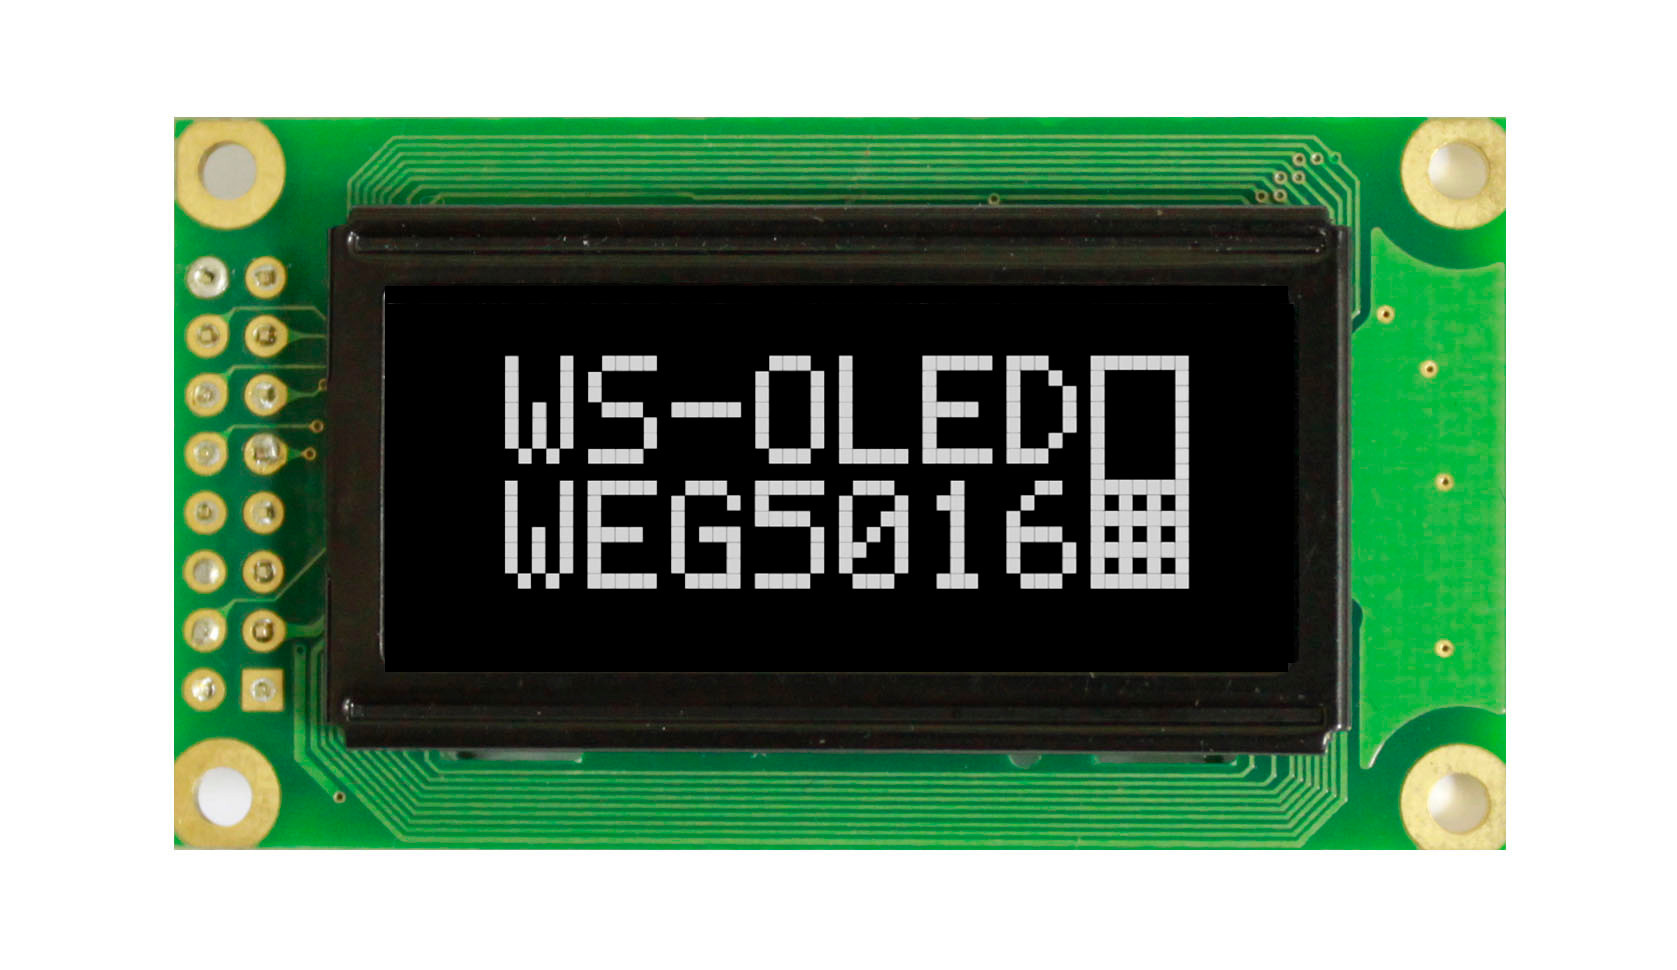 WEG005016AWPP5N00000 - Winstar Longlife OLED graphic display module (white, 50x16, COB - Chip on Board)